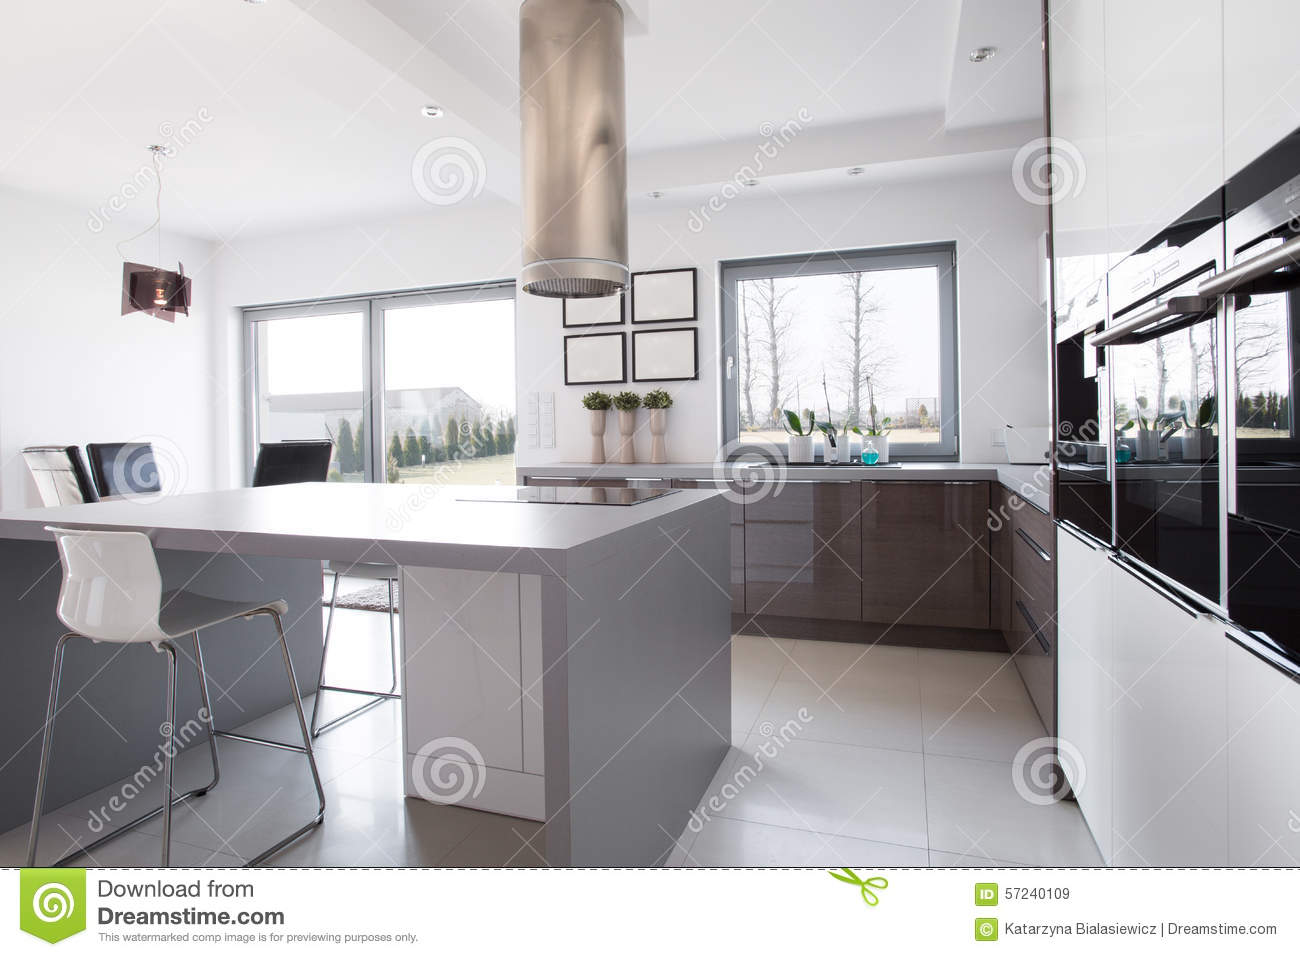 Kitchen island in the middle stock photo image 57240109 for Kitchens with islands in the middle